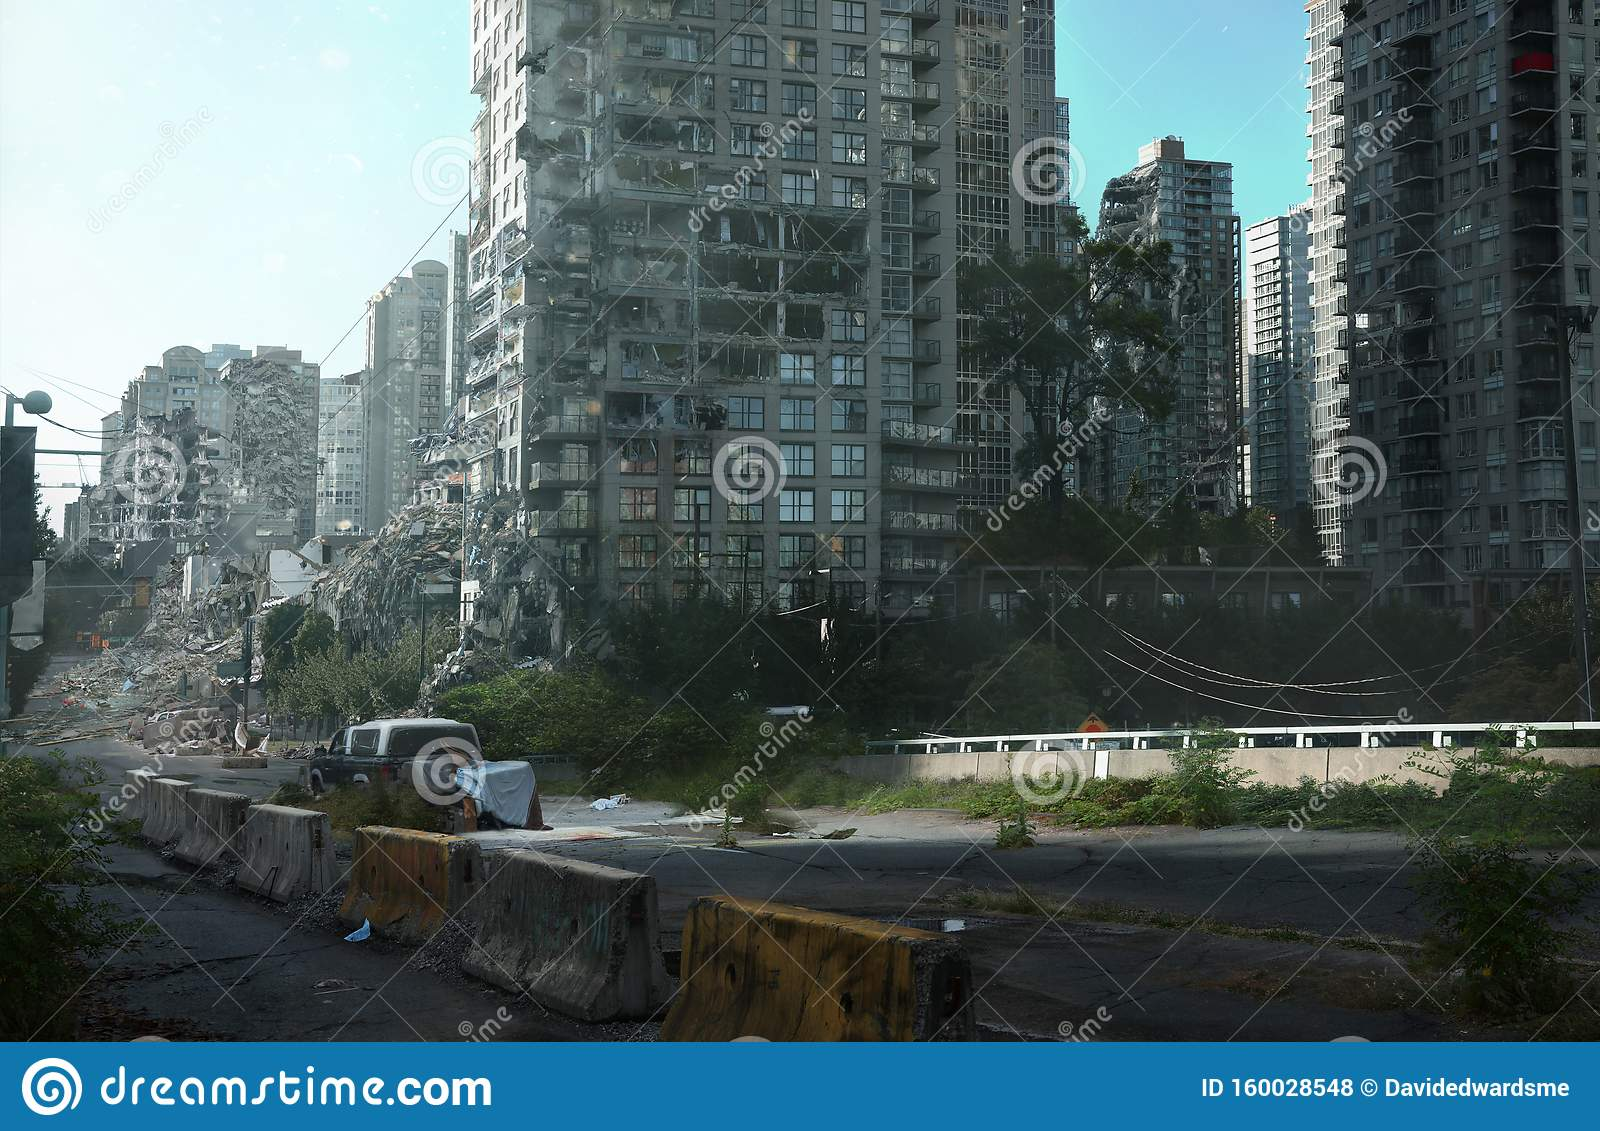 4 950 Post Apocalyptic Photos Free Royalty Free Stock Photos From Dreamstime